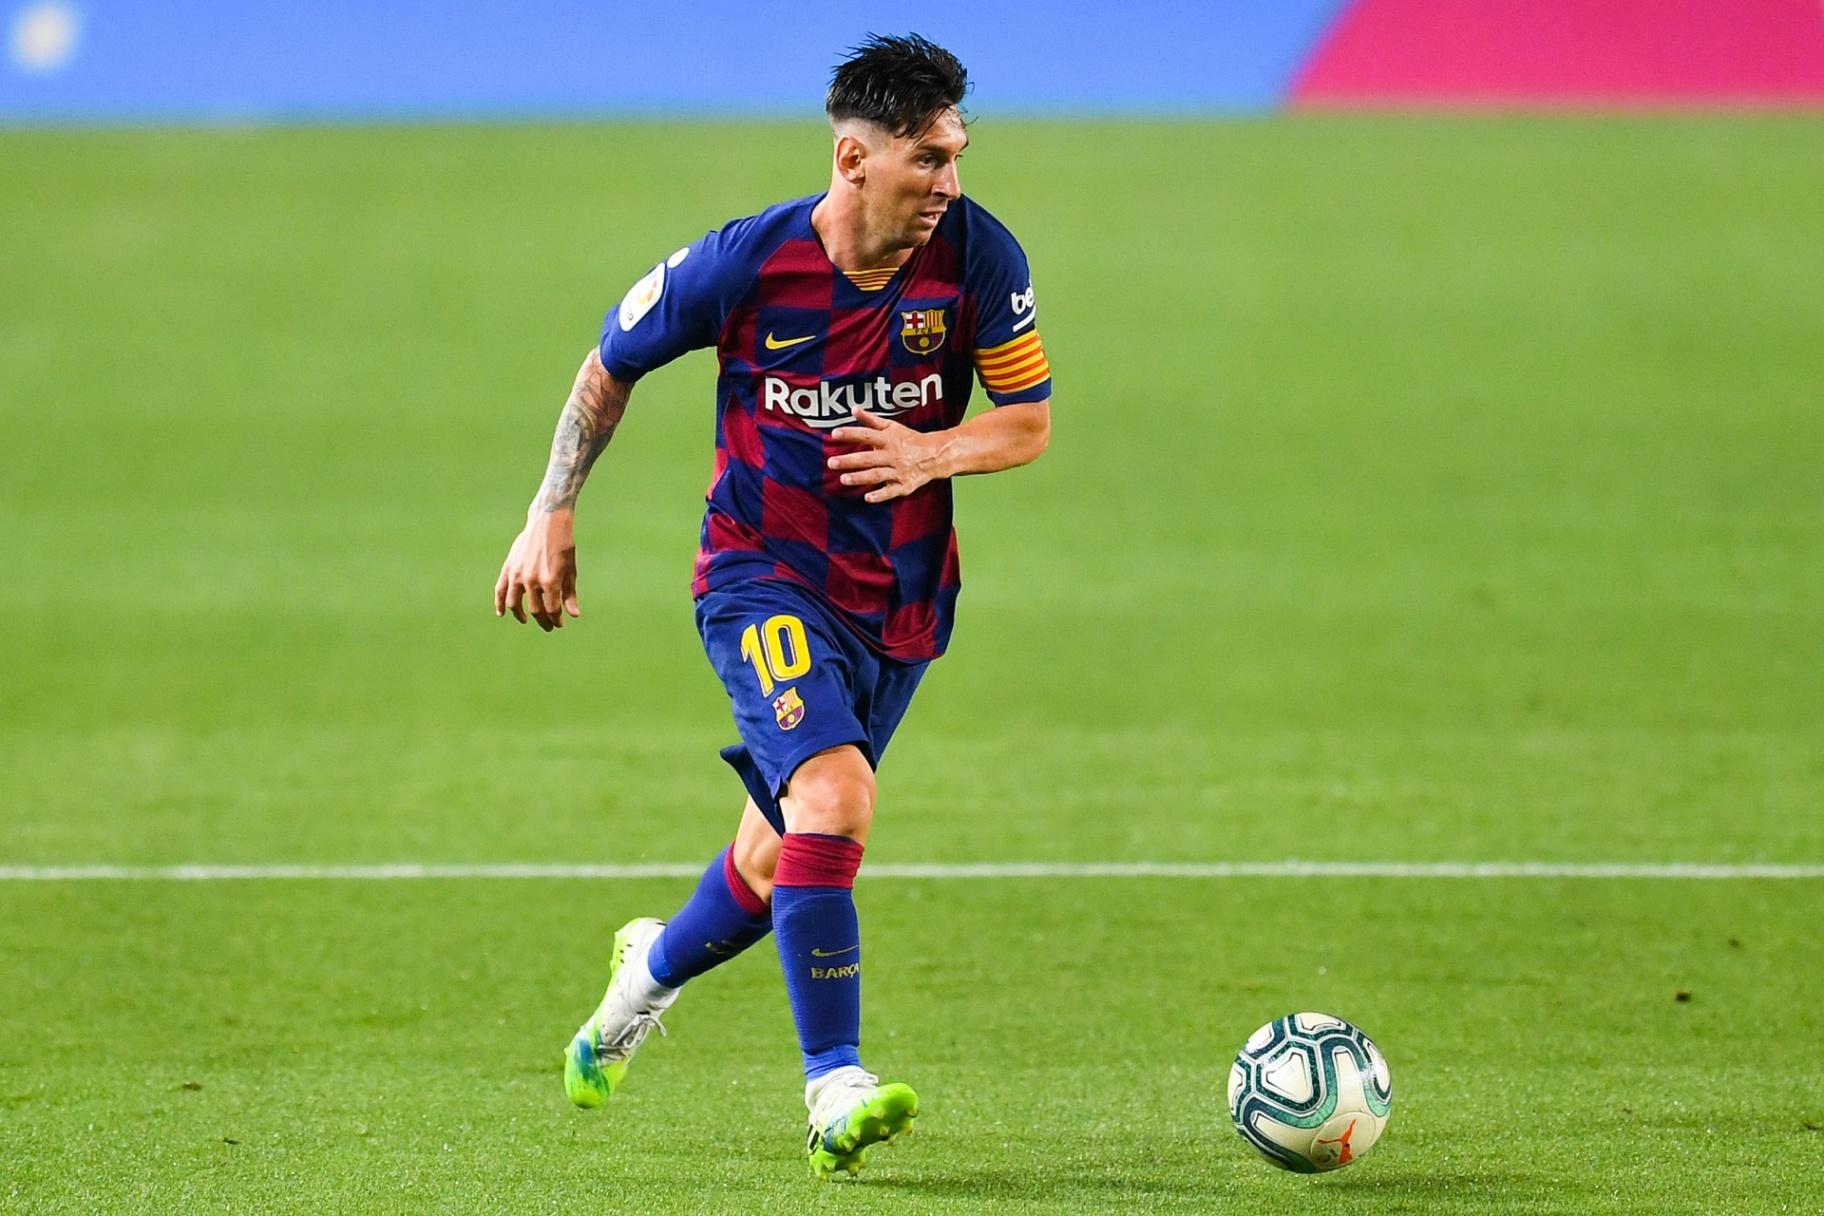 Lionel Messi - Facts About the Life of the Great Argentine Player